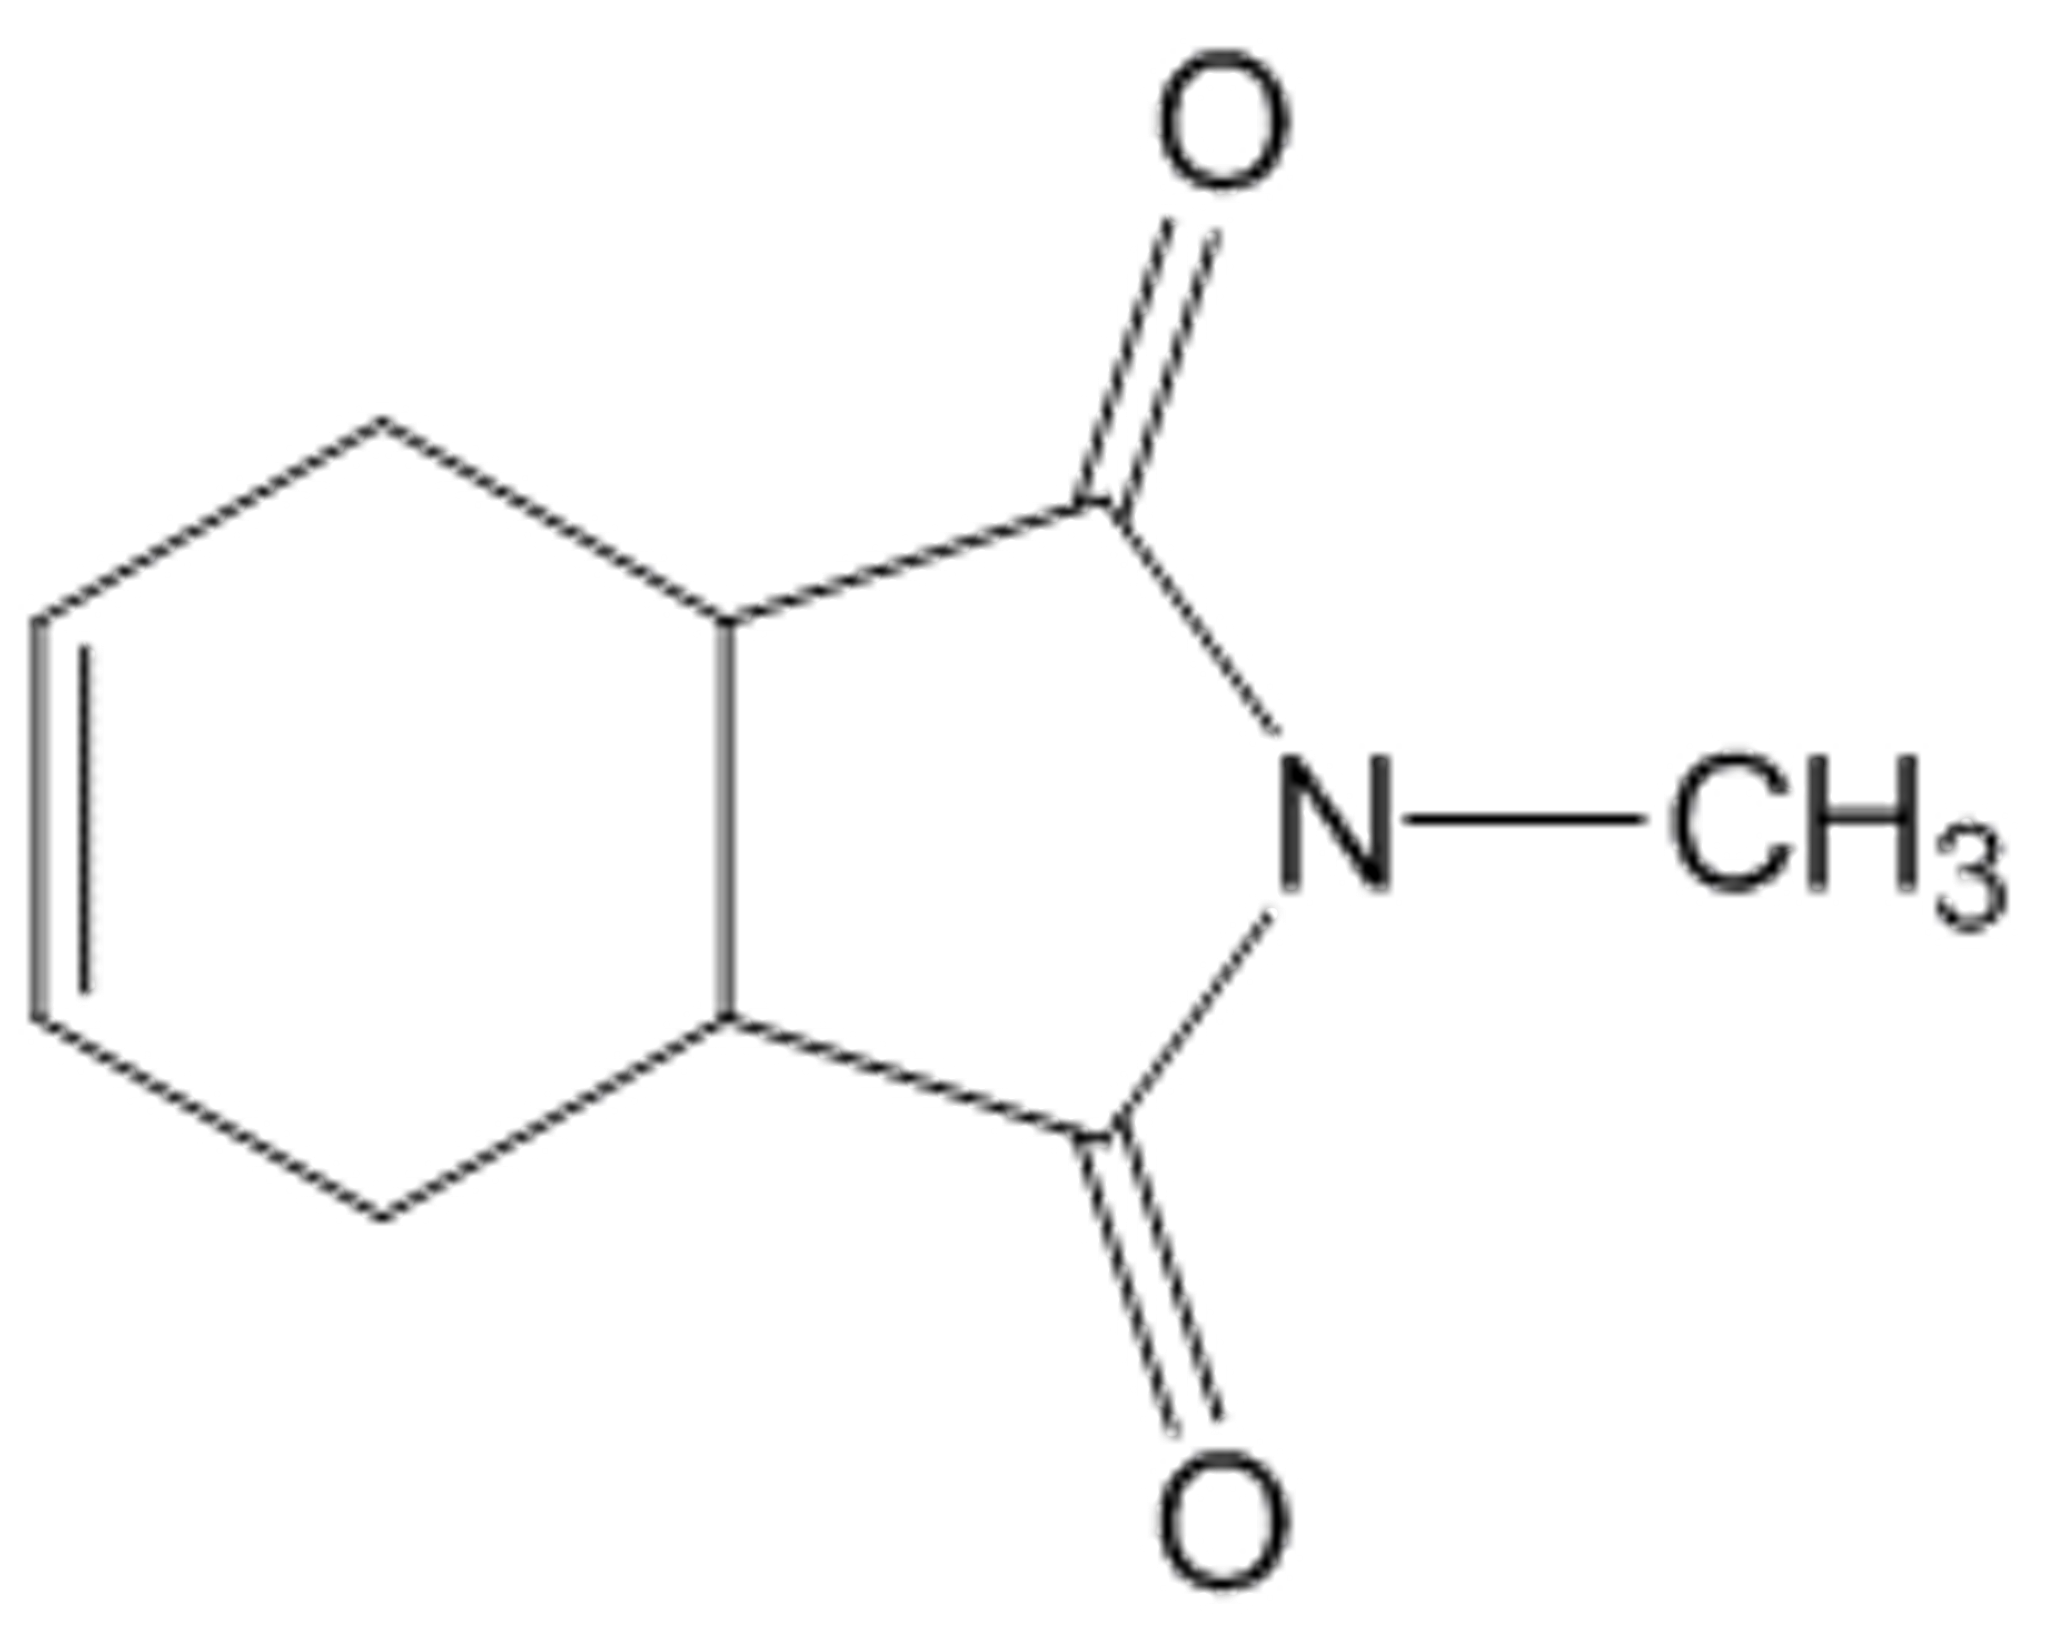 Drawing compound product formed. Solved this was by